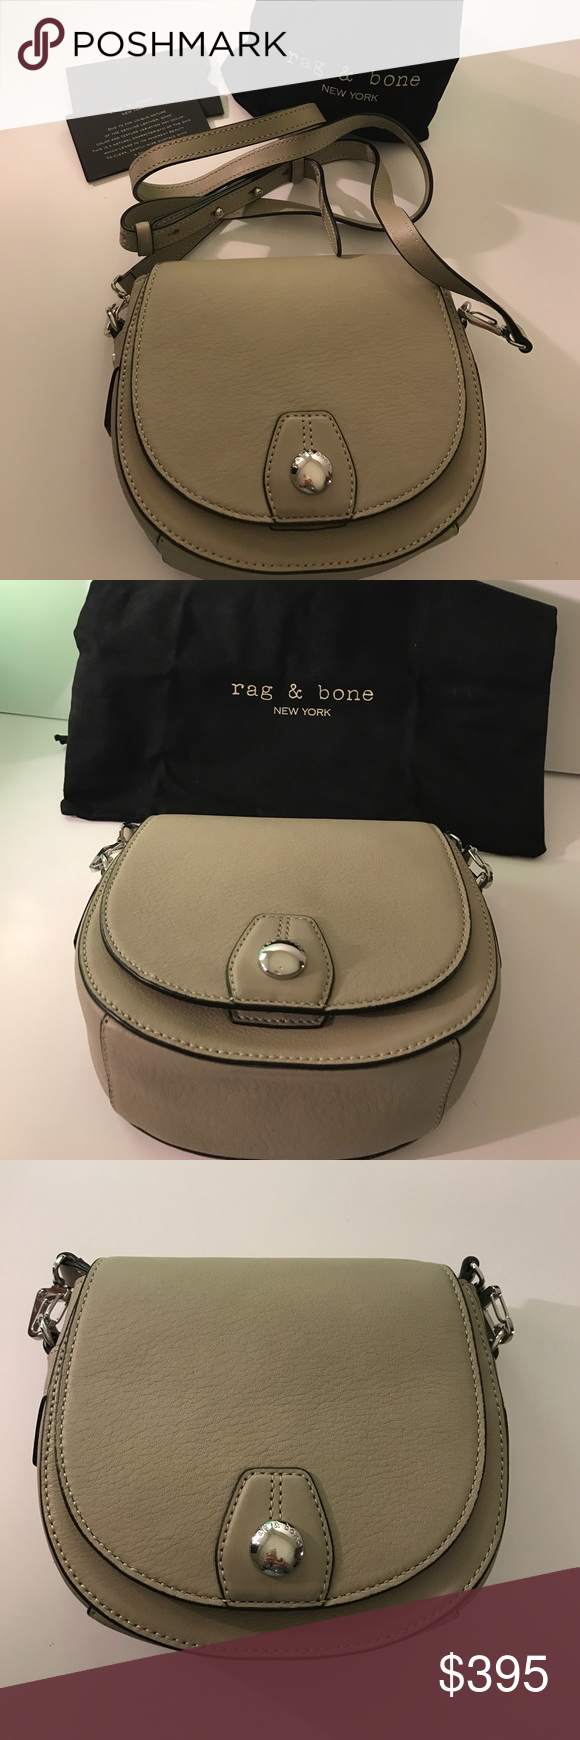 HOST PICK 🌷🌷🌷rag & bone Mini Flight Saddle Bag NWT rag & bone Mini Flight Saddle Bag in Clay. Comes with dust bag and authenticity card. Size is 7 inches by 6 inches in a neutral clay color. Strap is detachable and gives the bag an additional 23 to 29 inches. Stylish and simple bag. 🎀🦋🤗 rag & bone Bags Mini Bags